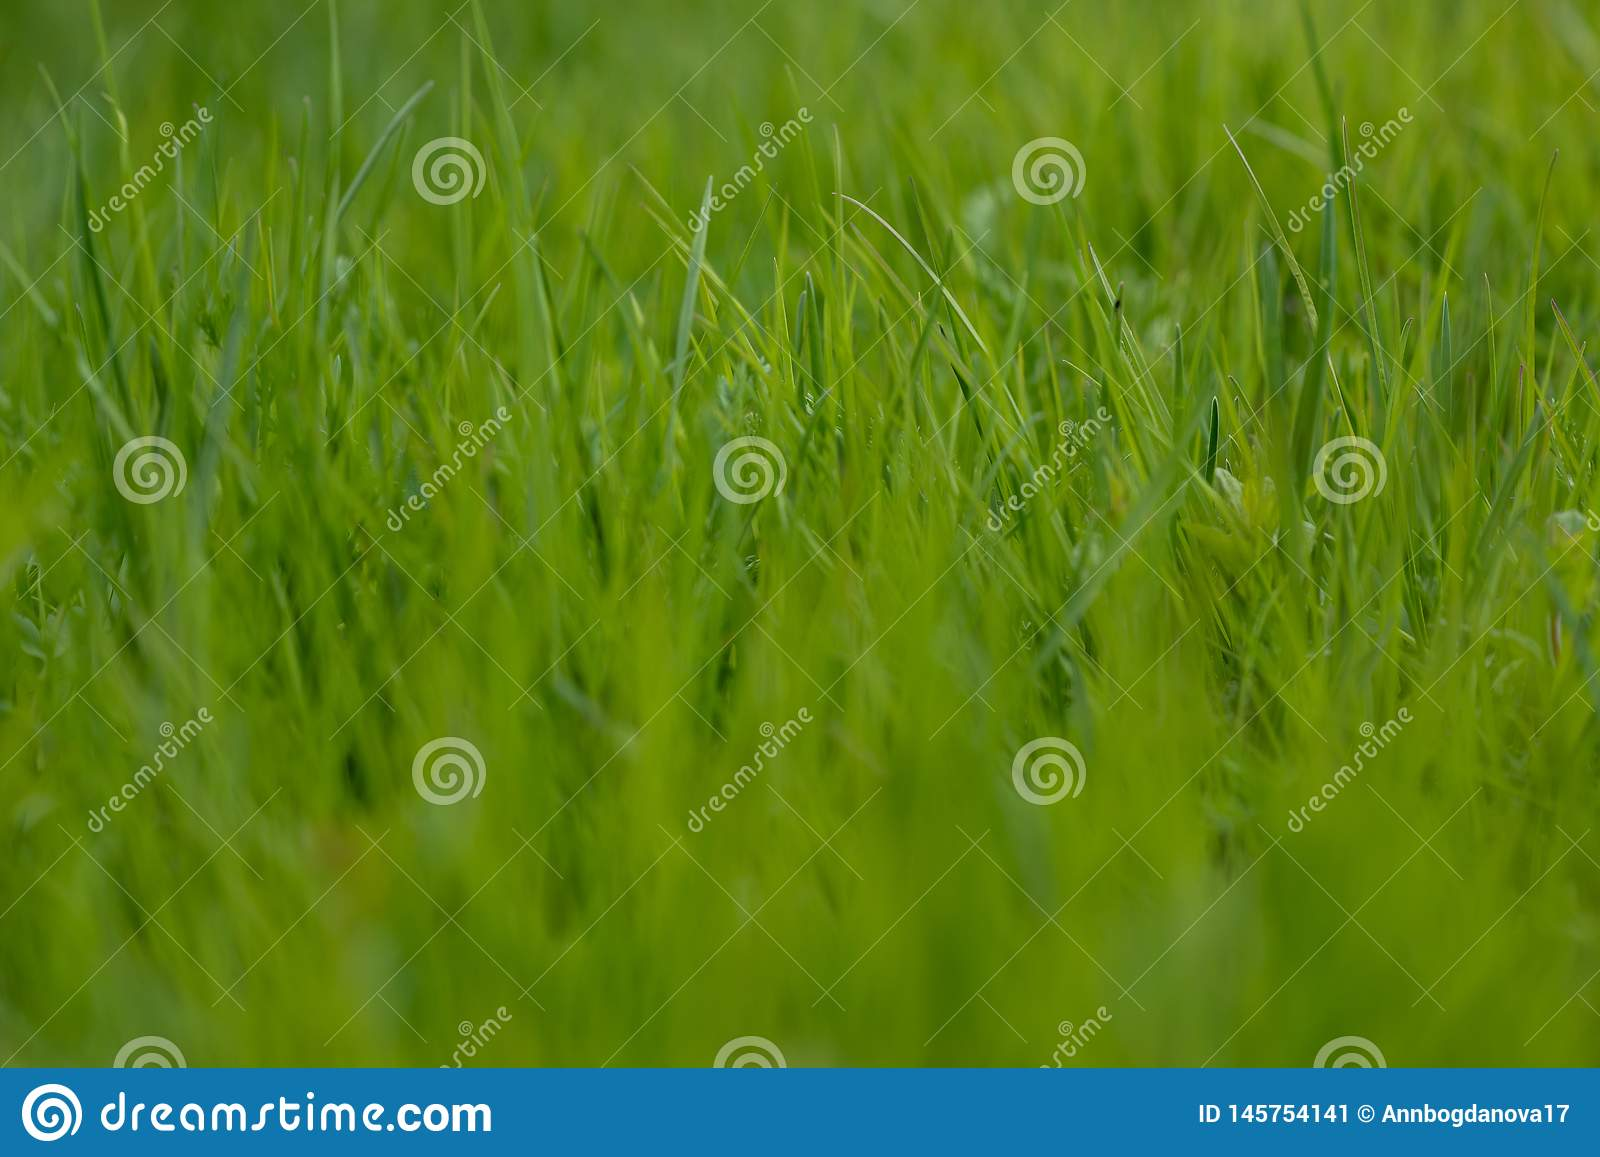 Green grass. the grass stirs from the wind. blurred background